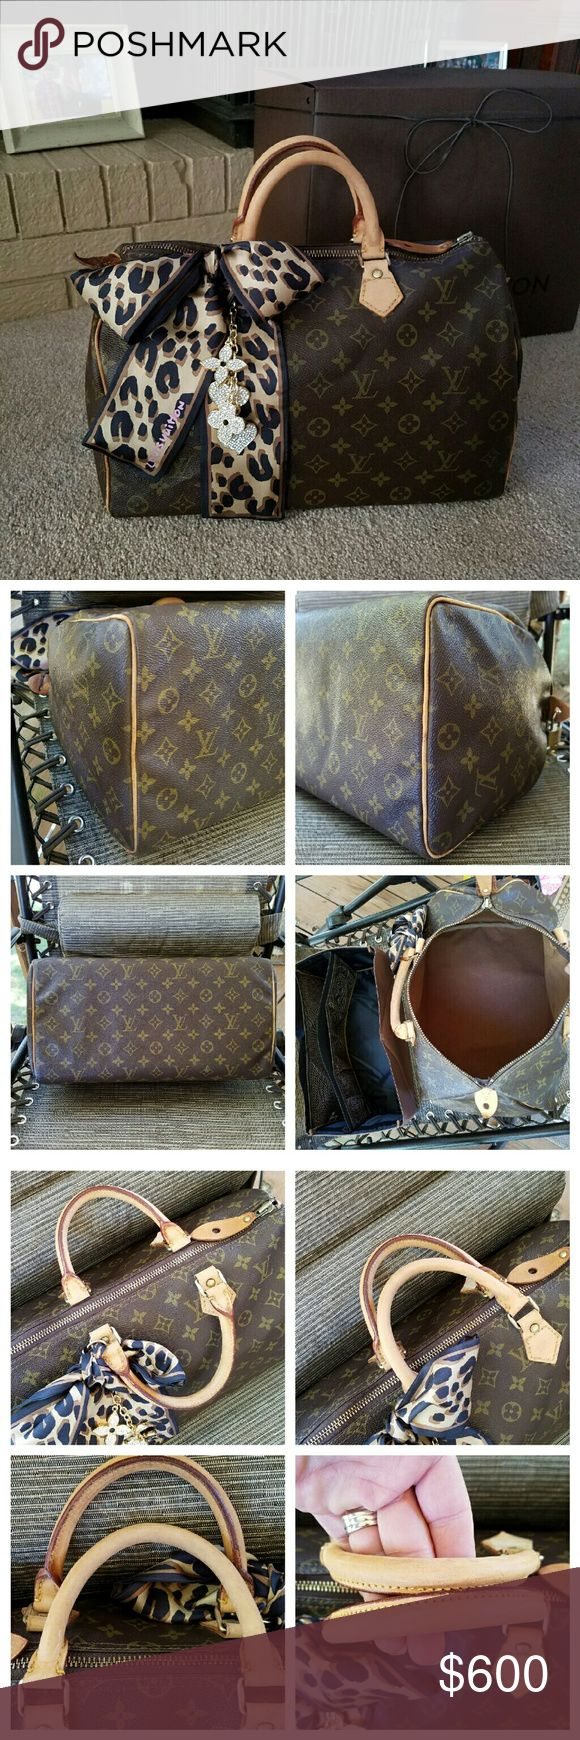 Louis Vuitton Speedy 35 Authentic 822SA Excellent Used Condtn Handles look great Vachetta-light patina zipper replaced(not byLV)=STILL HAS ORIGNL LV zipper Slide&pull.He broke side tab&fixd it poorly as shown.replace it for $50-or buy a cover for 15 I Added Lock/Key+FREE SCARF (notLV) light wear on trim piping area but not major or bad @all.u shuld not expect a new bag at this price,its a Vintage Hardware shiny! THIS IS A STEAL!  SEL TRADEs TRADE VAL700min *HAS 2 LISTINGS SHAPER&BOX SOLD…